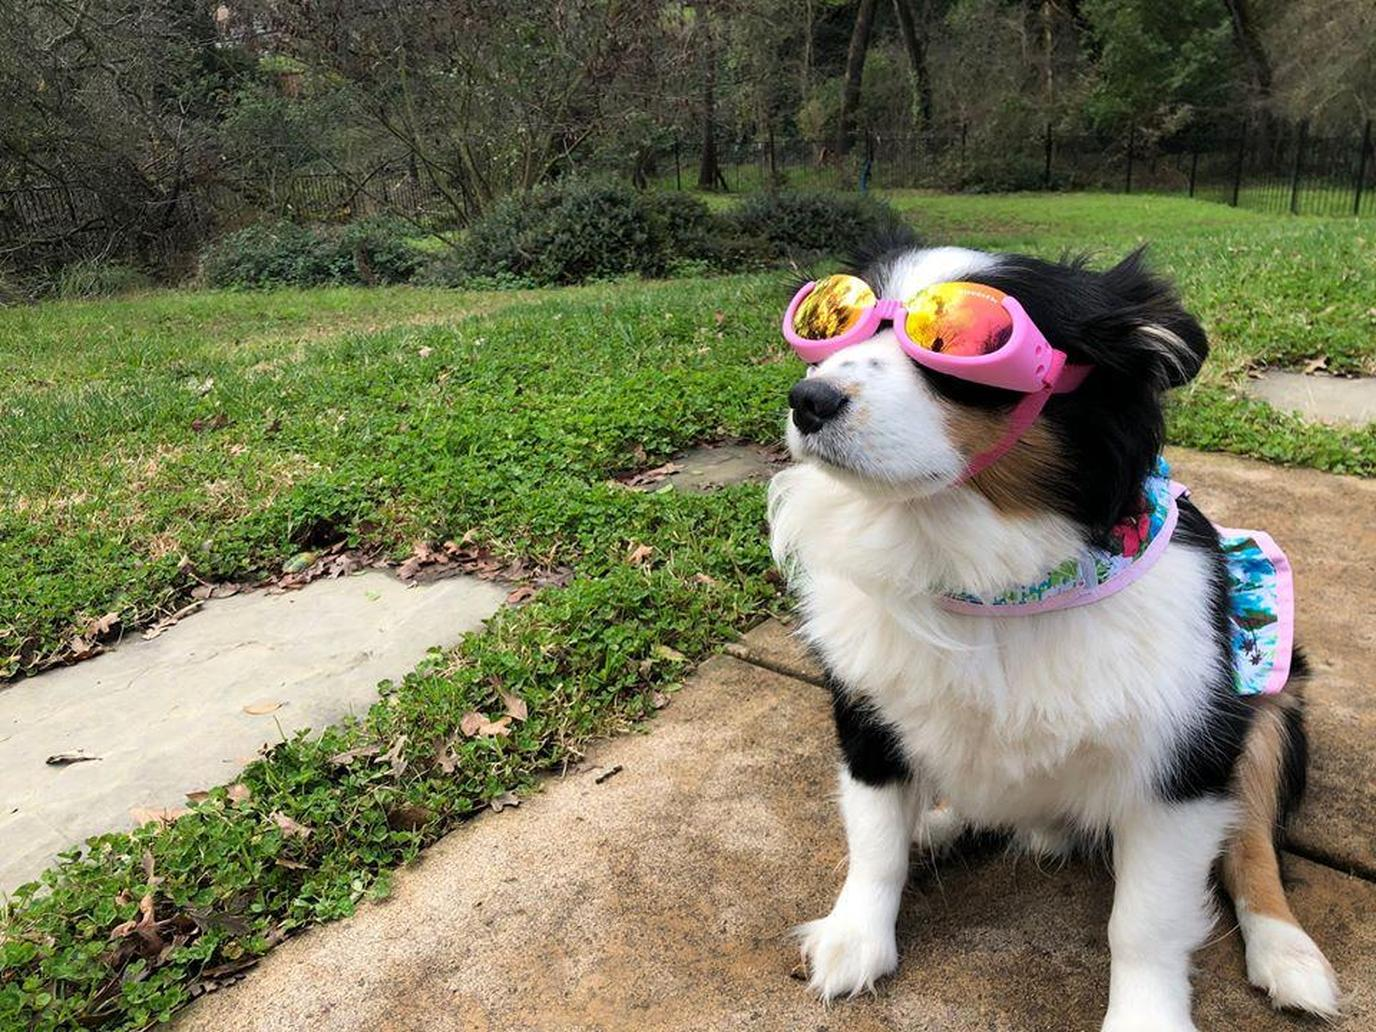 A Dog Sits in a Yard on a Rainy Day Wearing Doggles.